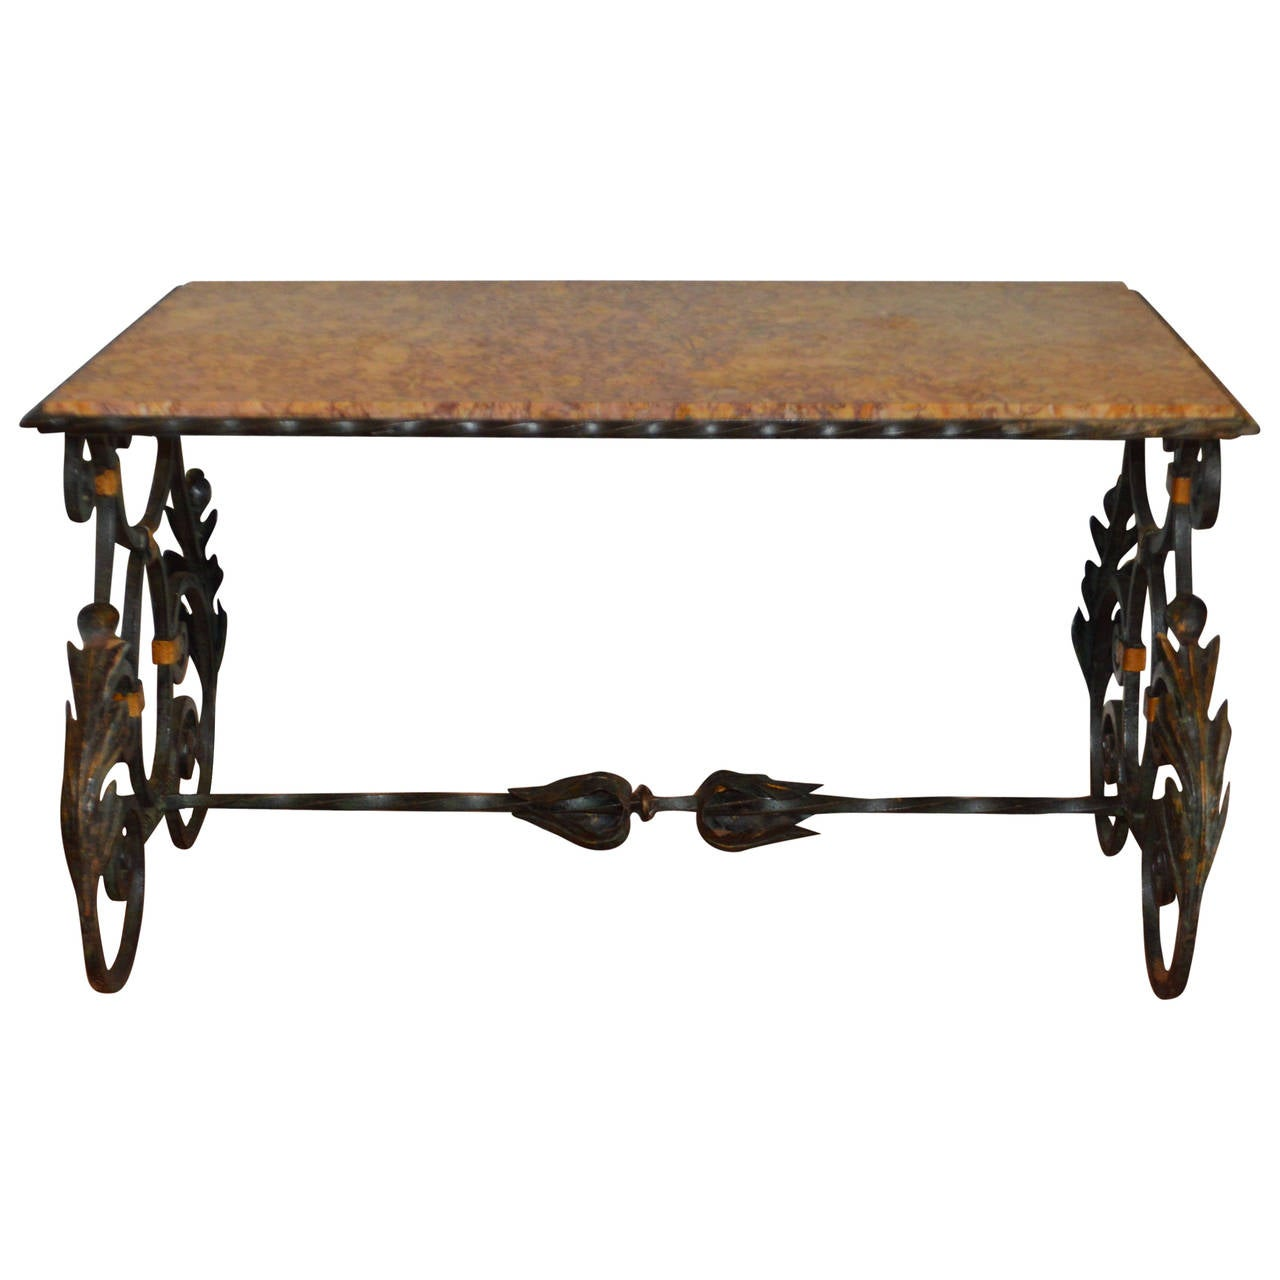 Belle epoque wrought iron coffee table with marble top for Stone and iron coffee table